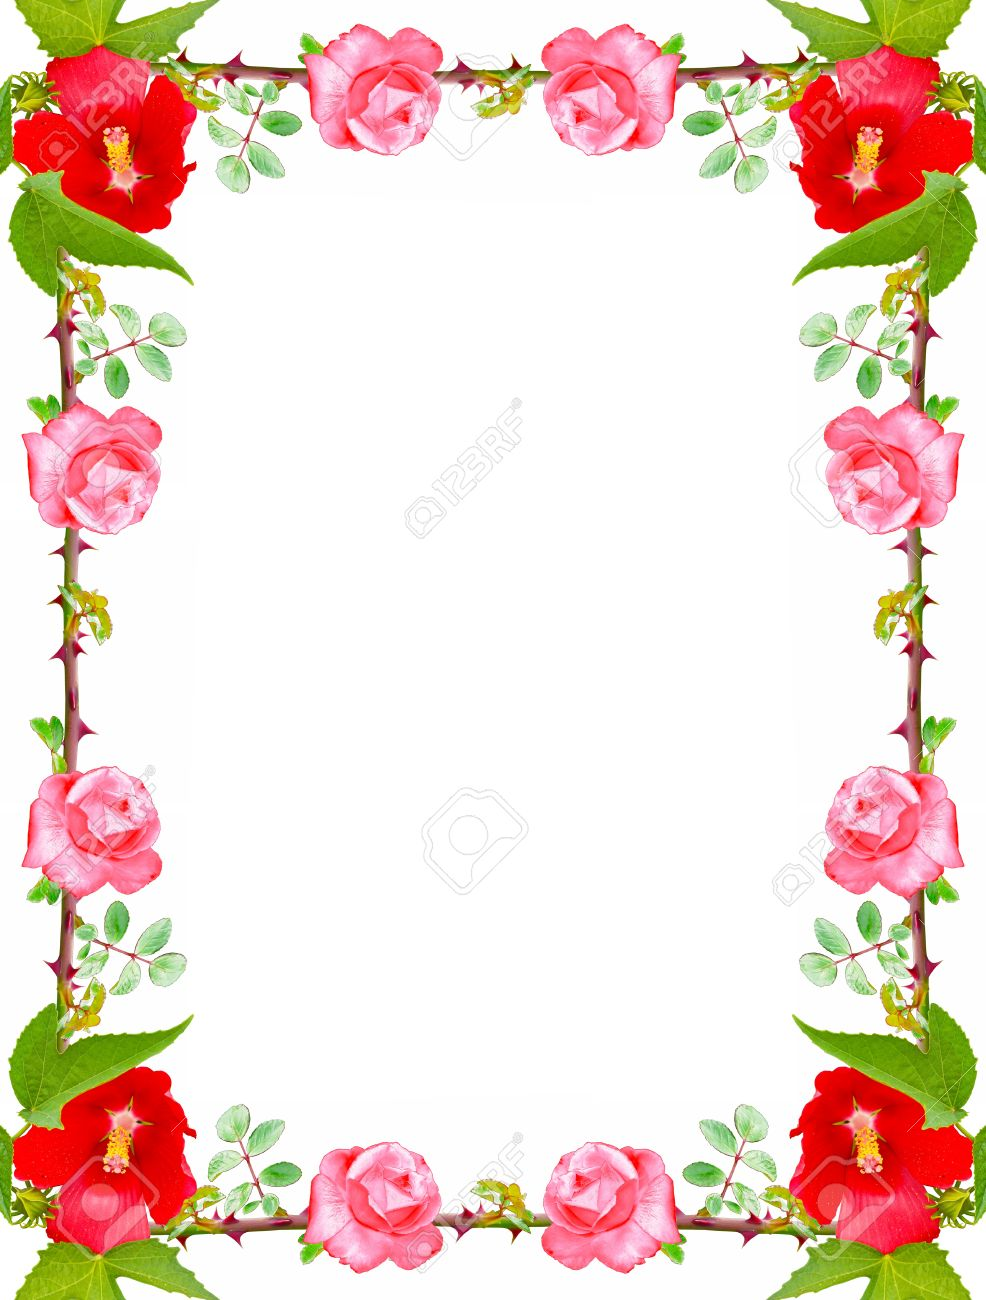 Beautiful Frame Made Of Roses On A White Background Stock Photo ...